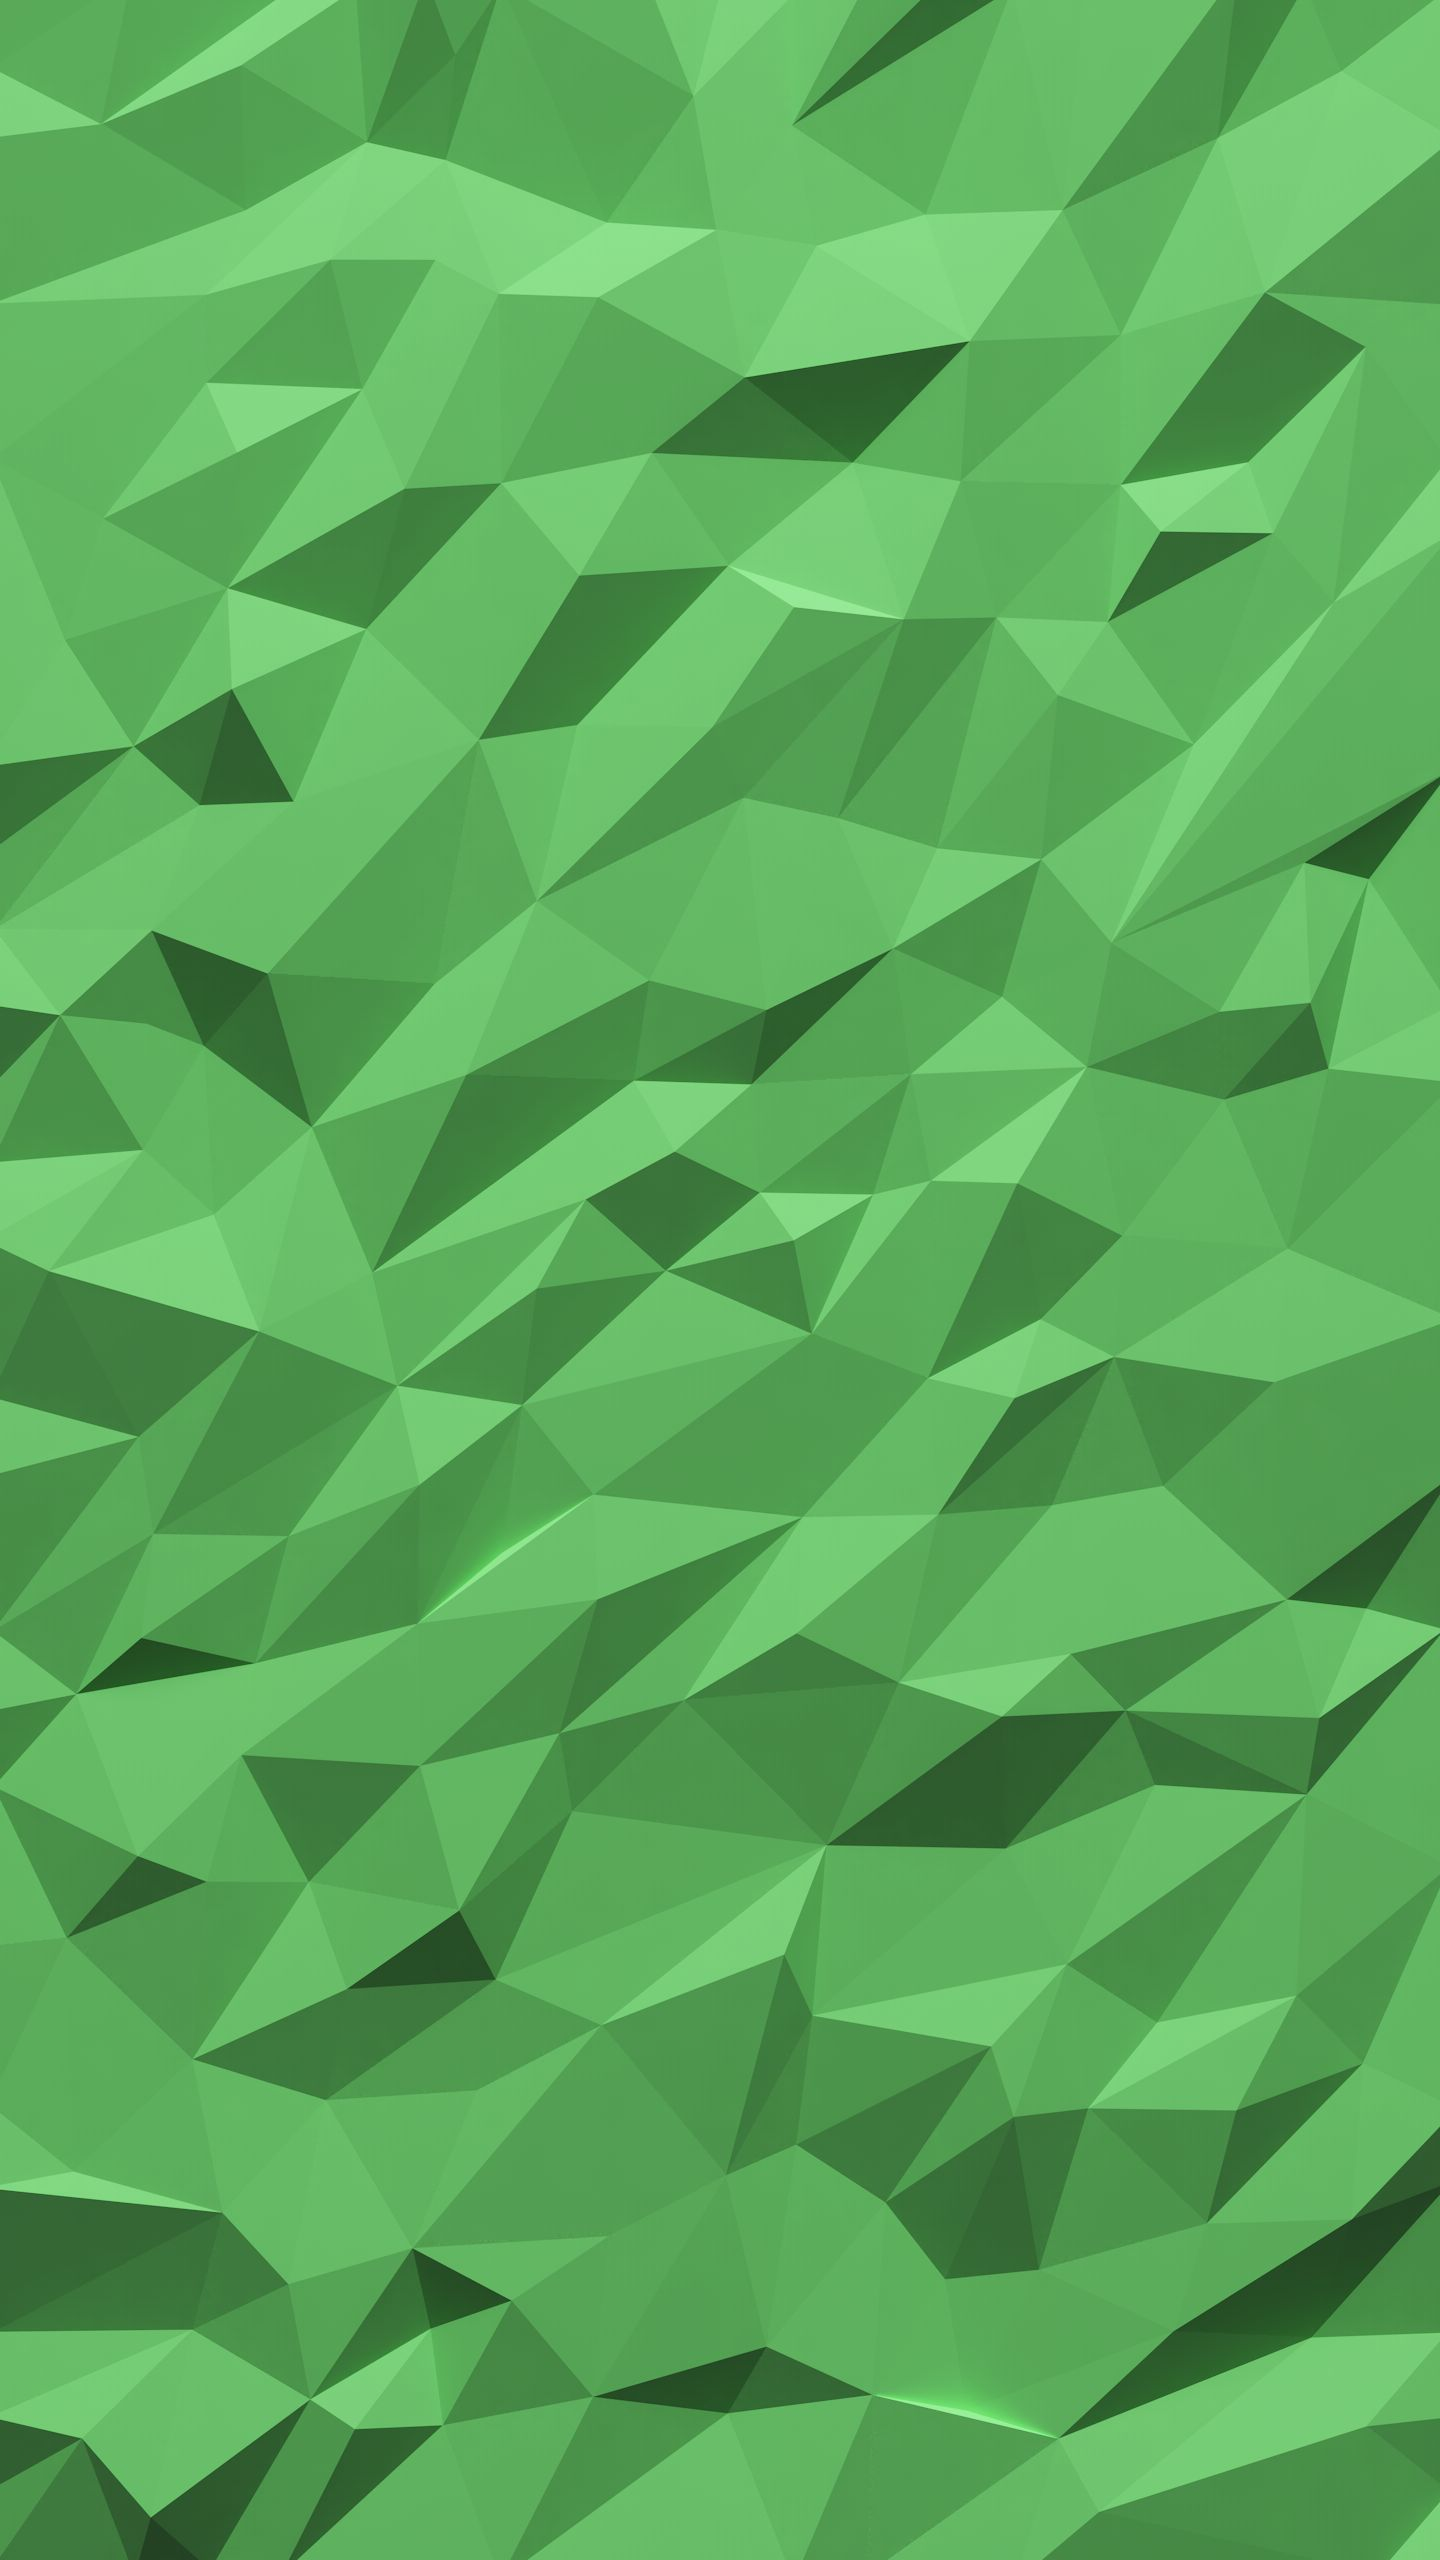 95699 download wallpaper Textures, Texture, Polygon, Triangles, Geometry screensavers and pictures for free